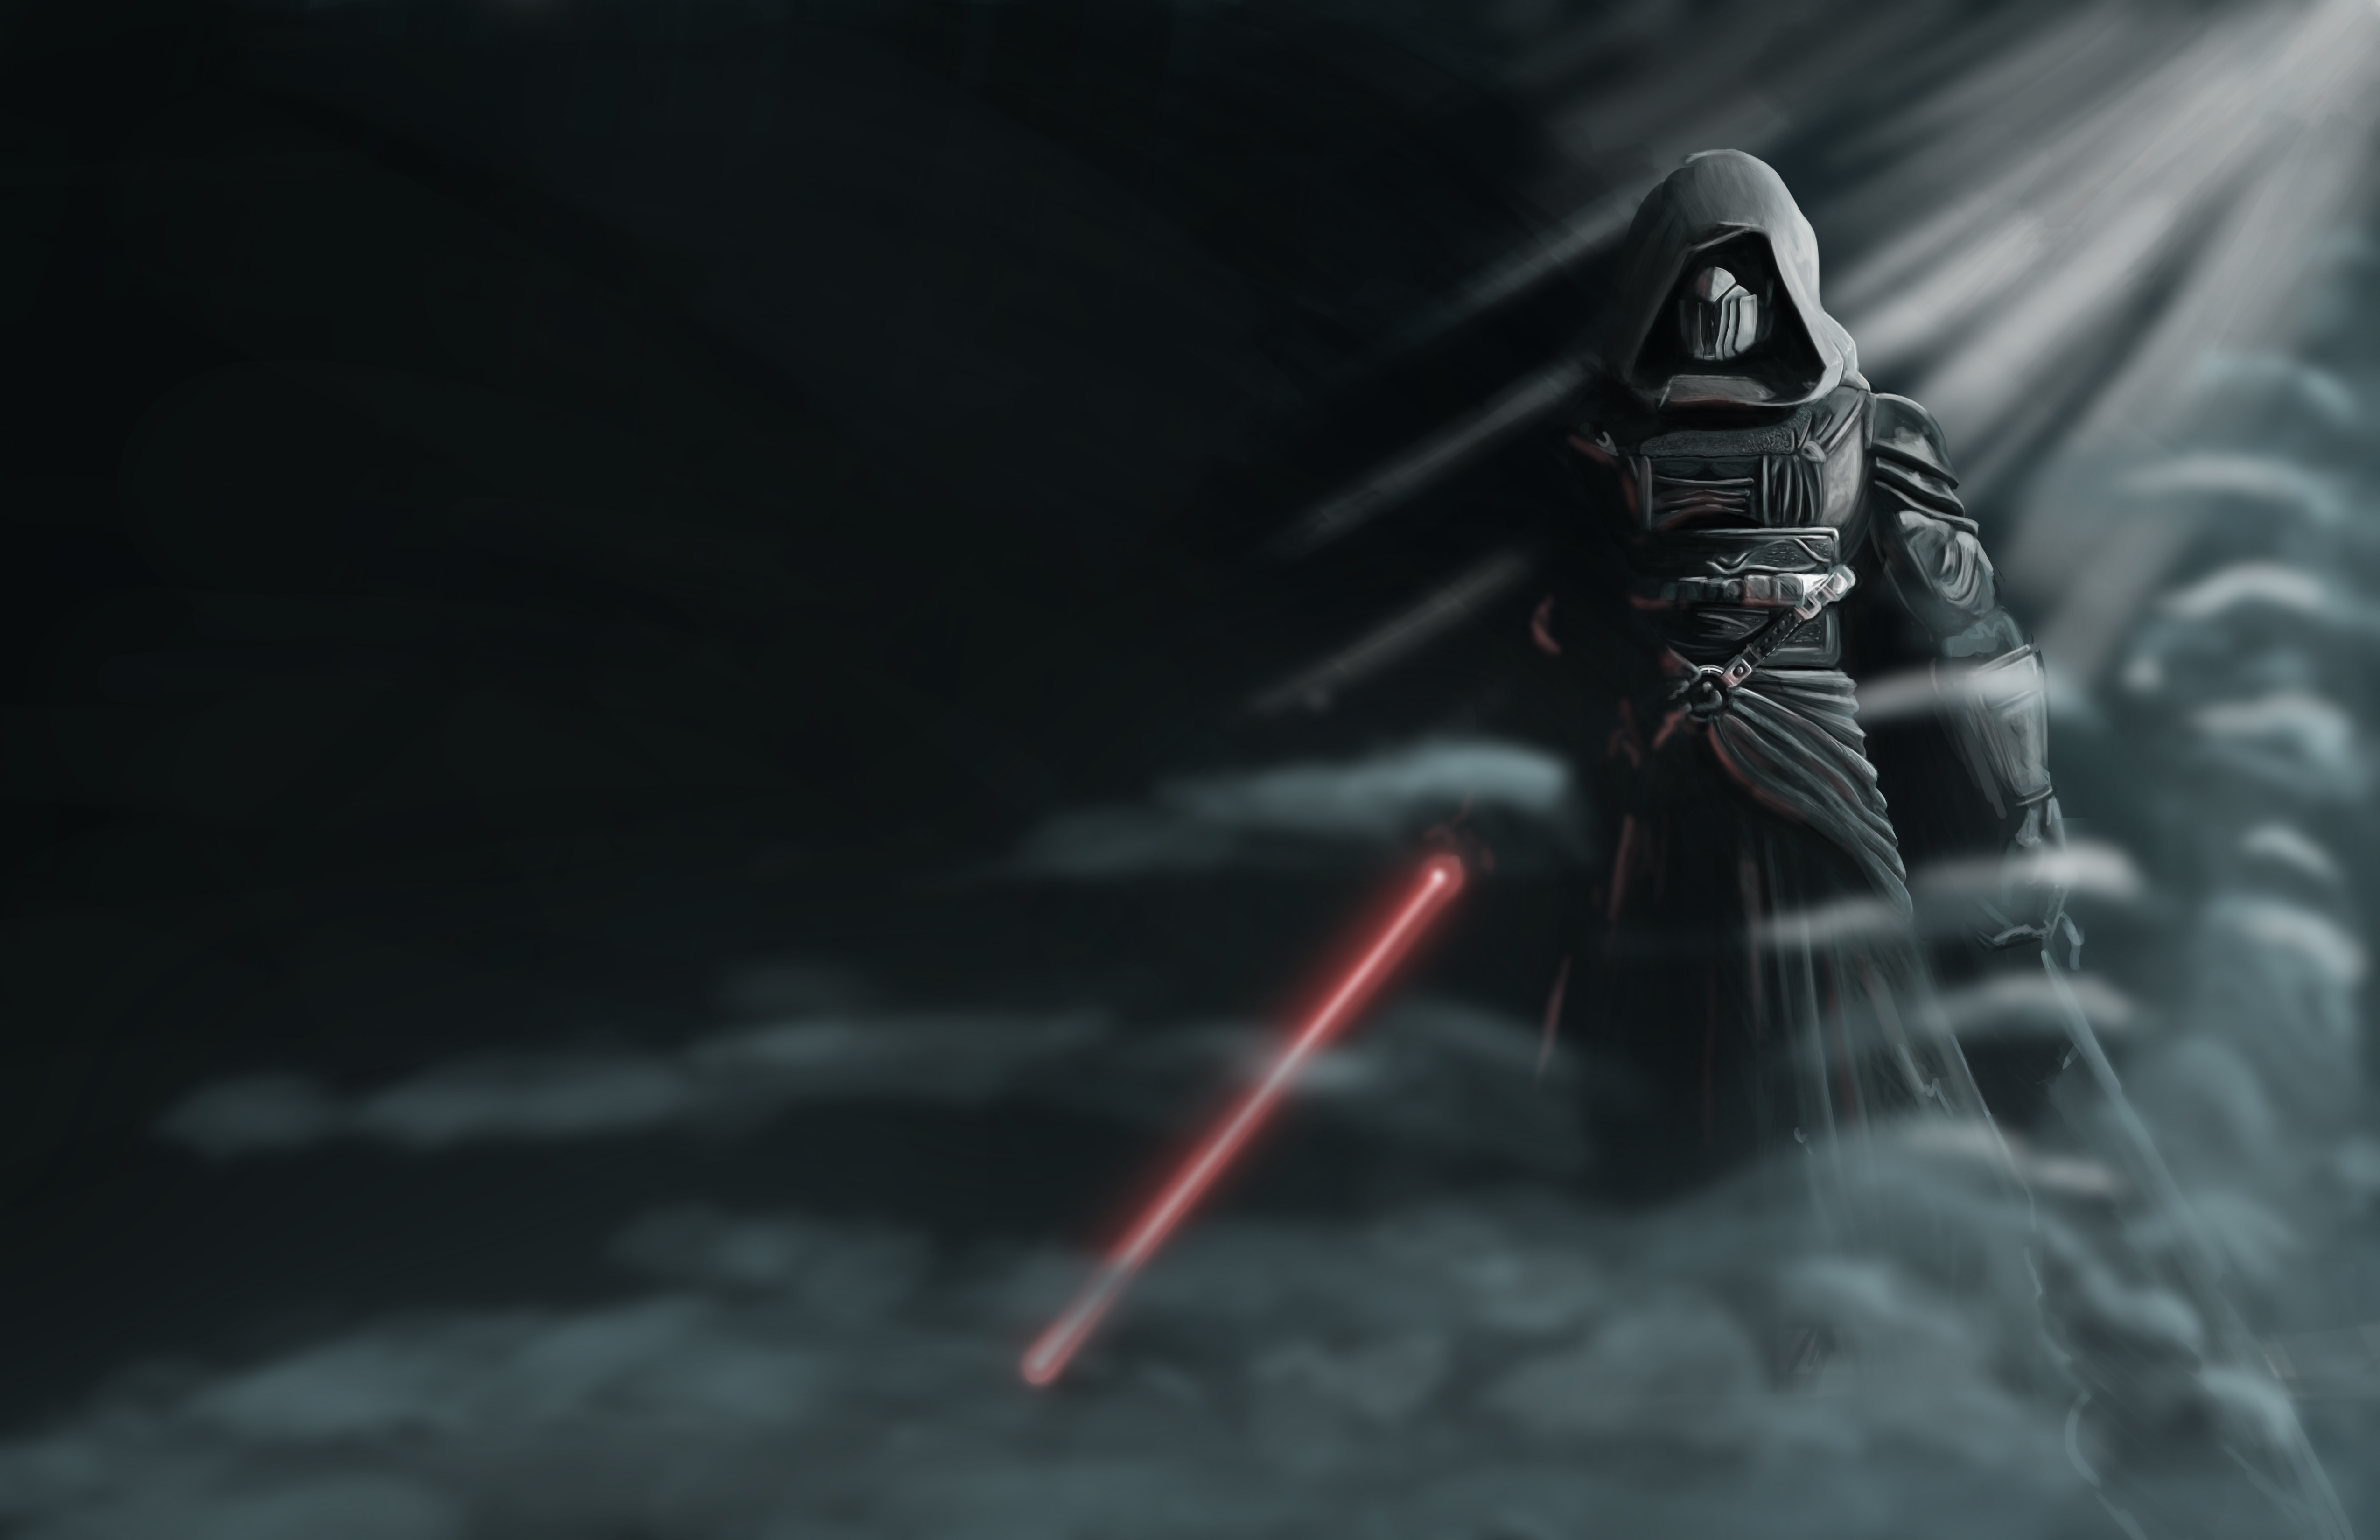 Star wars star wars sith lightsaber wallpaper   ForWallpapercom 5100x3300